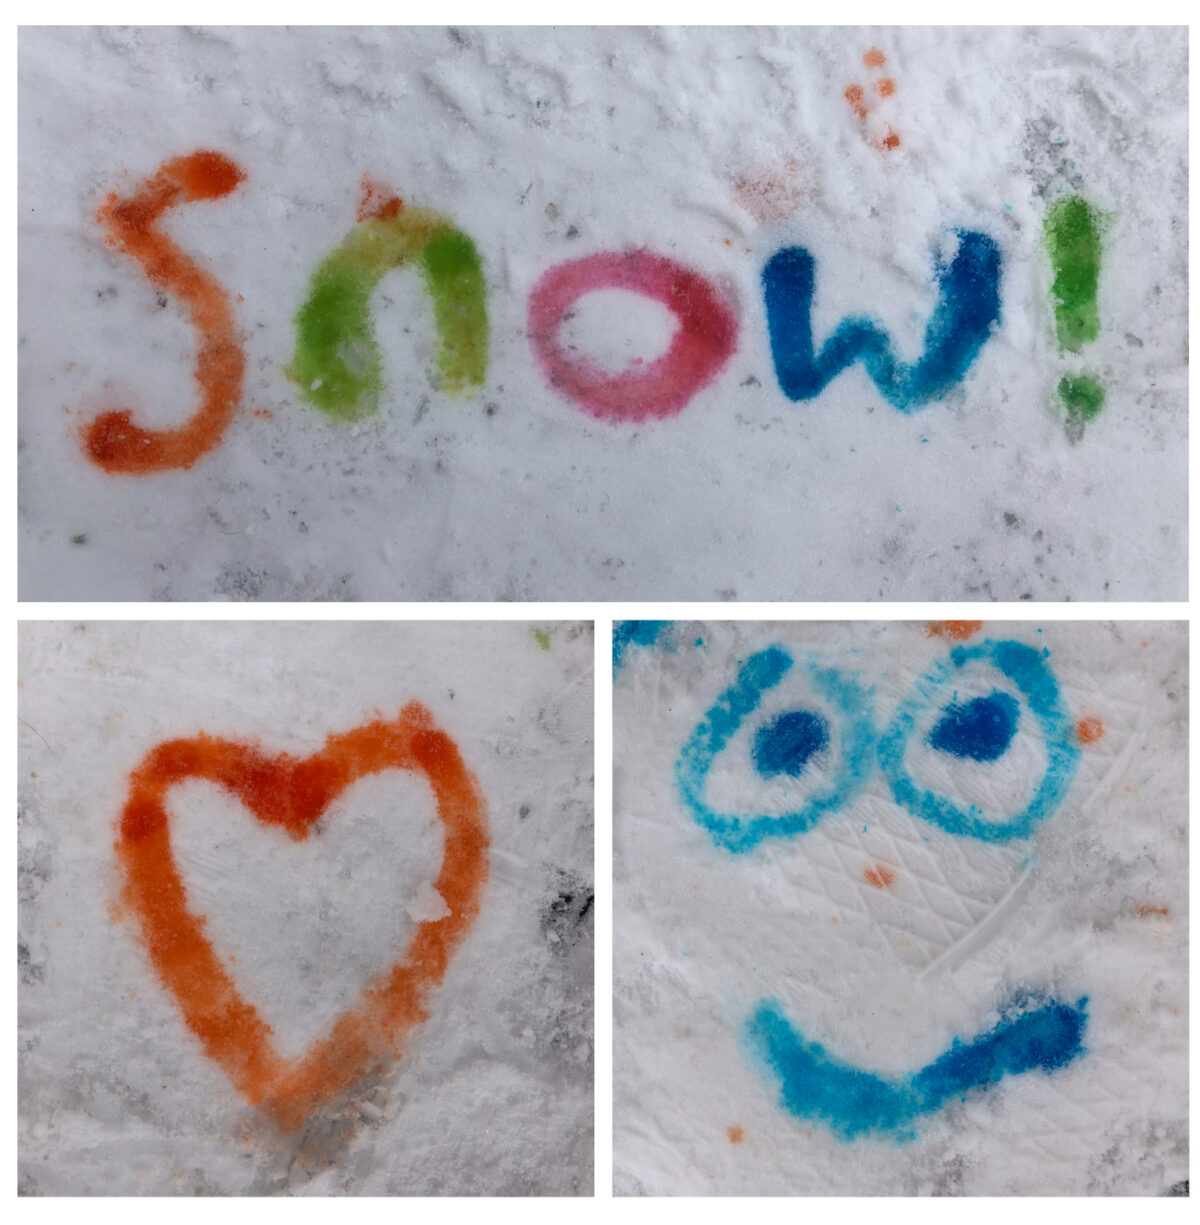 Using paintbrushes to paint in snow